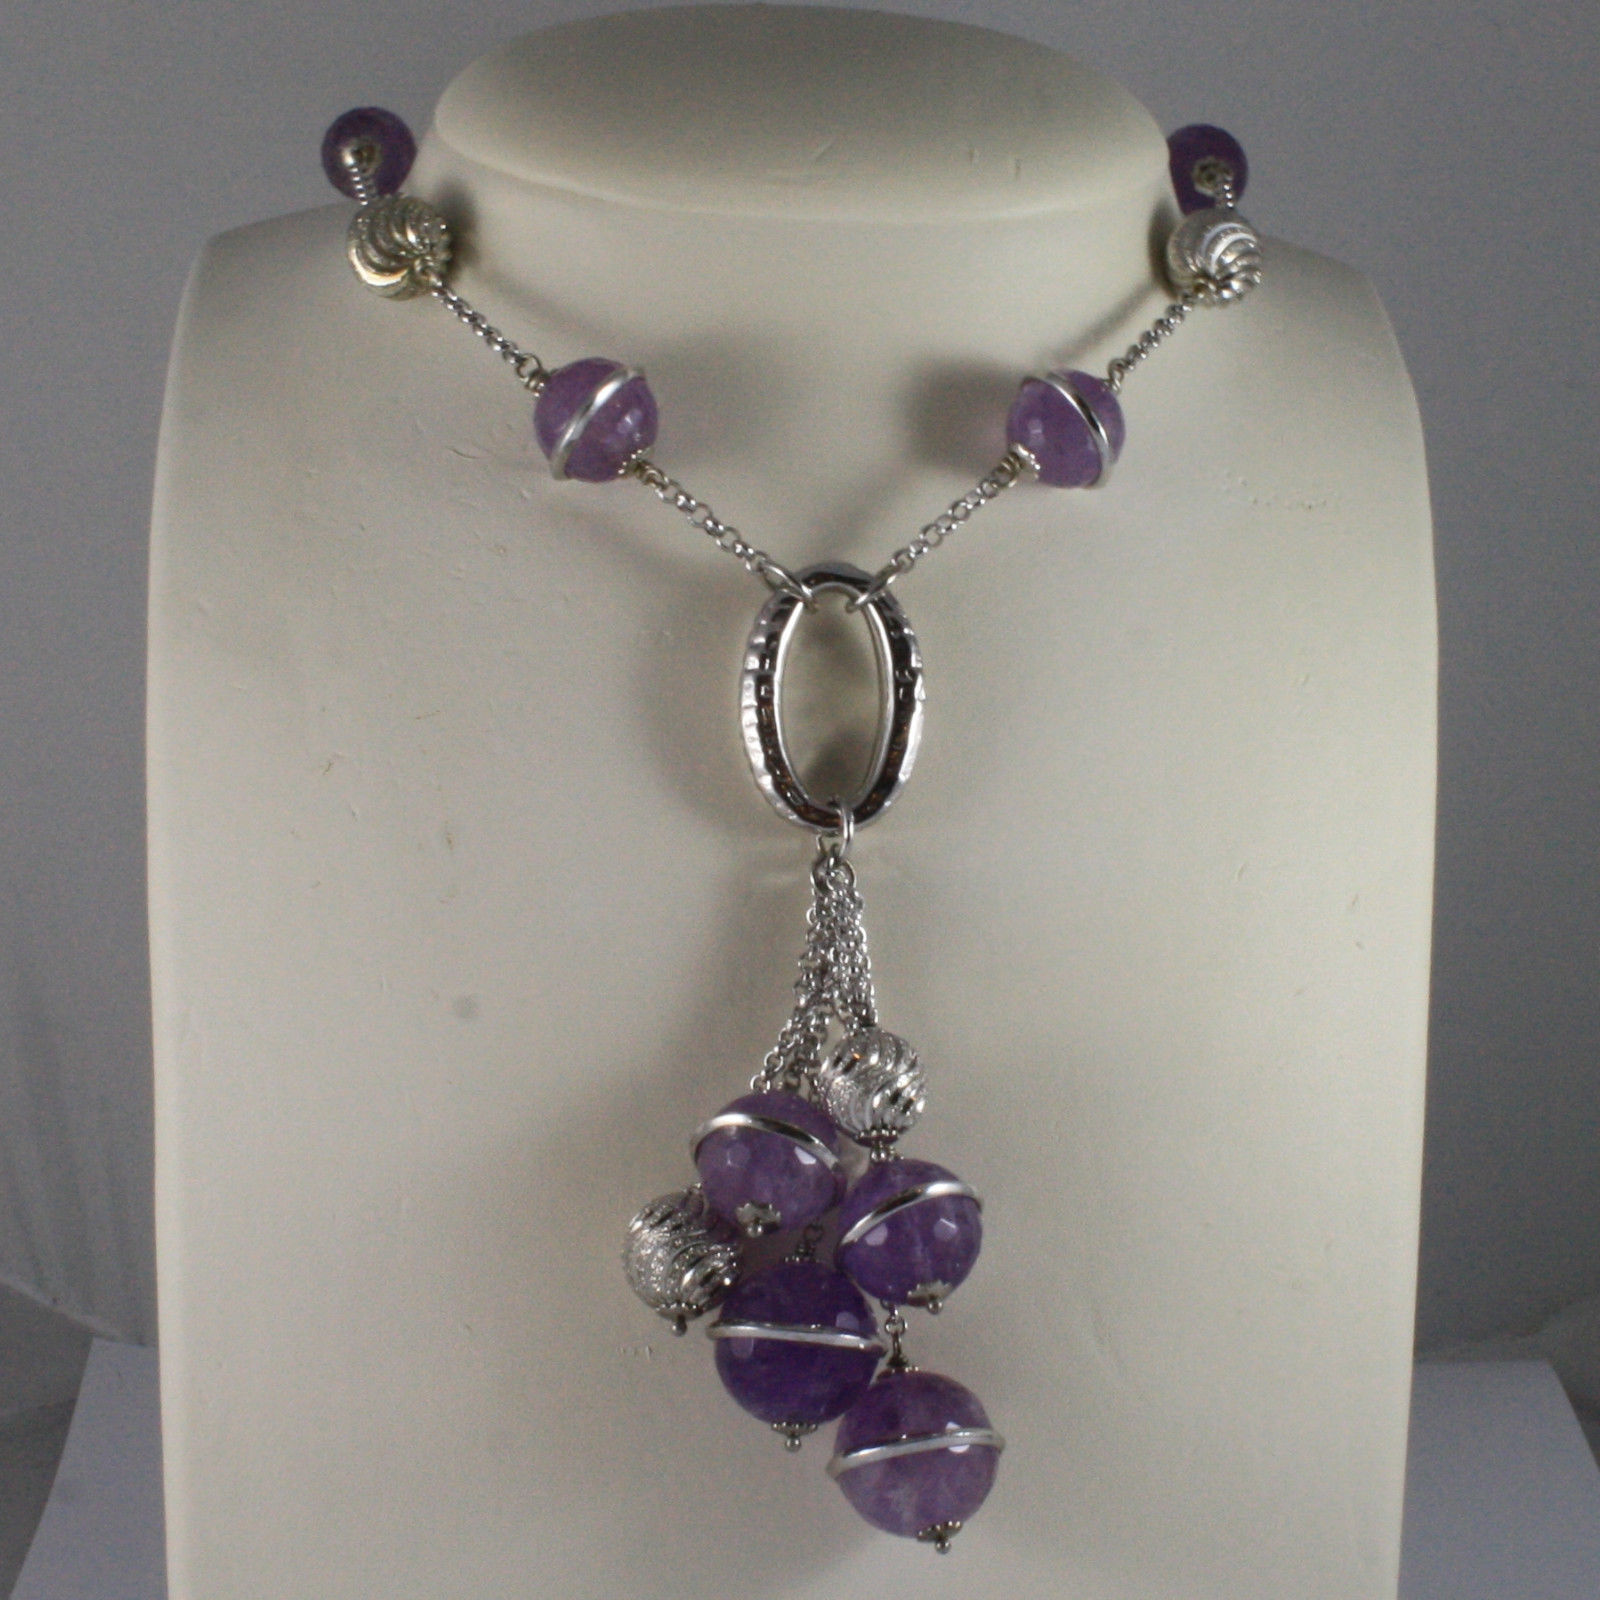 .925 SILVER RHODIUM NECKLACE WITH PURPLE AMETHYST AND SILVER OVAL AND SPHERES